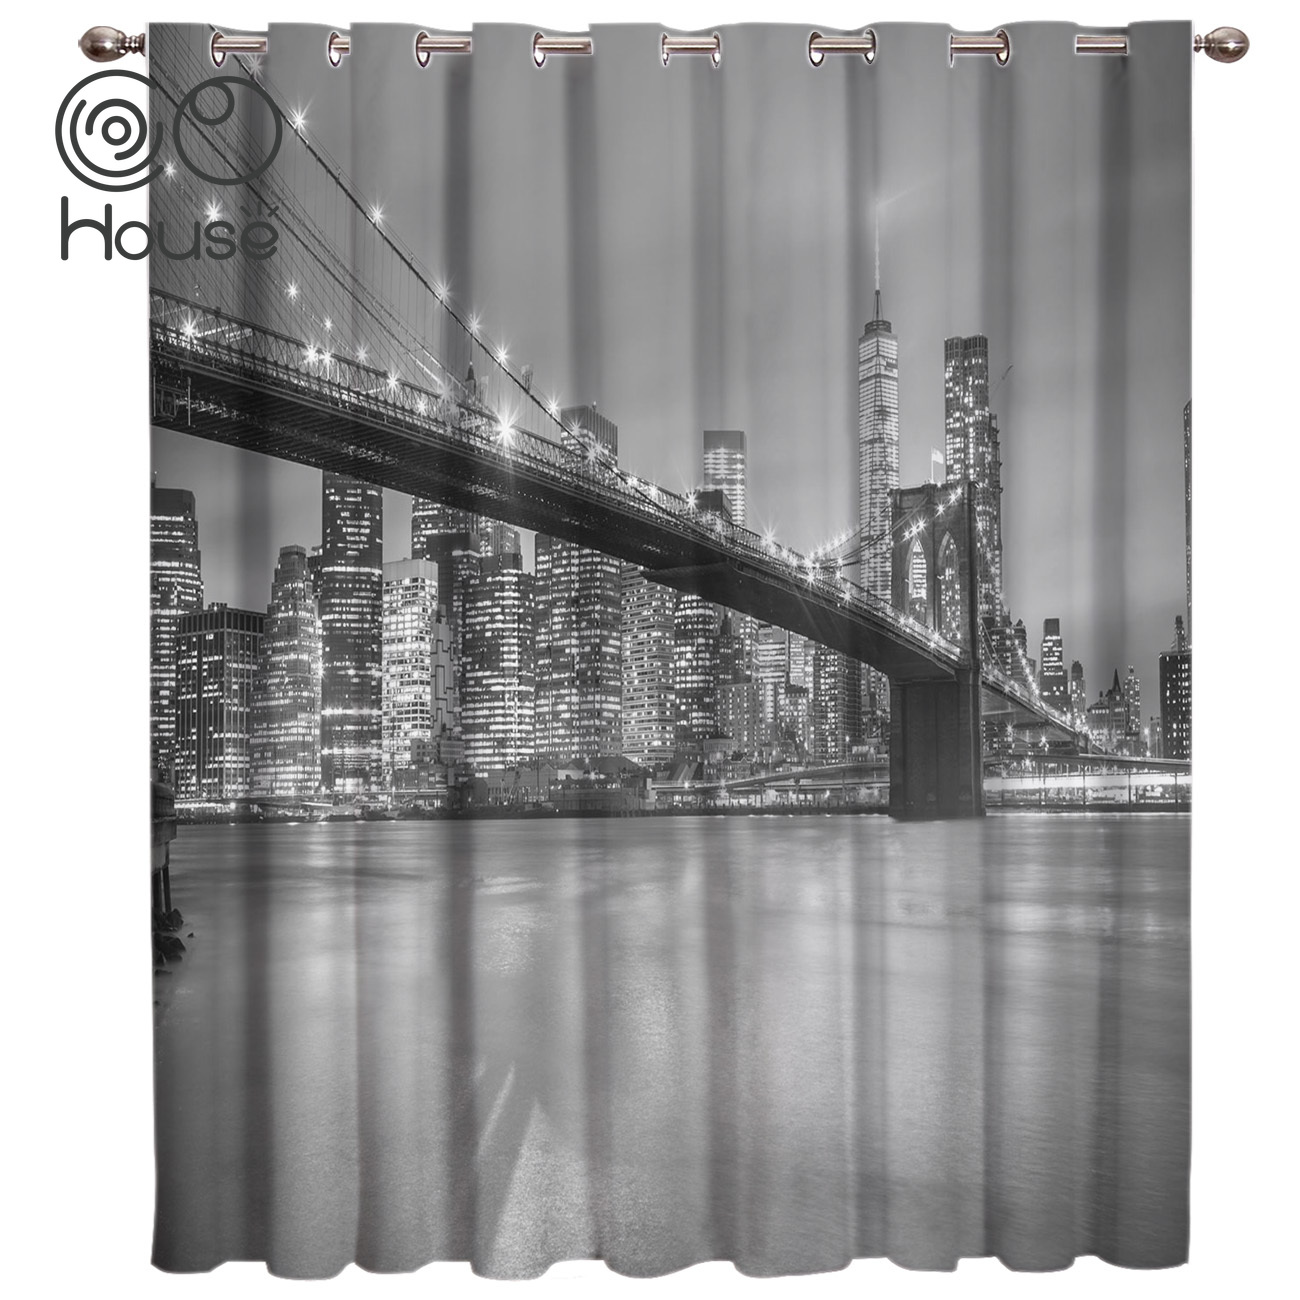 COCOHouse New York City Night Room Curtains Large Window Window Curtains Dark Living Room Blackout Bedroom Fabric Decor Curtain